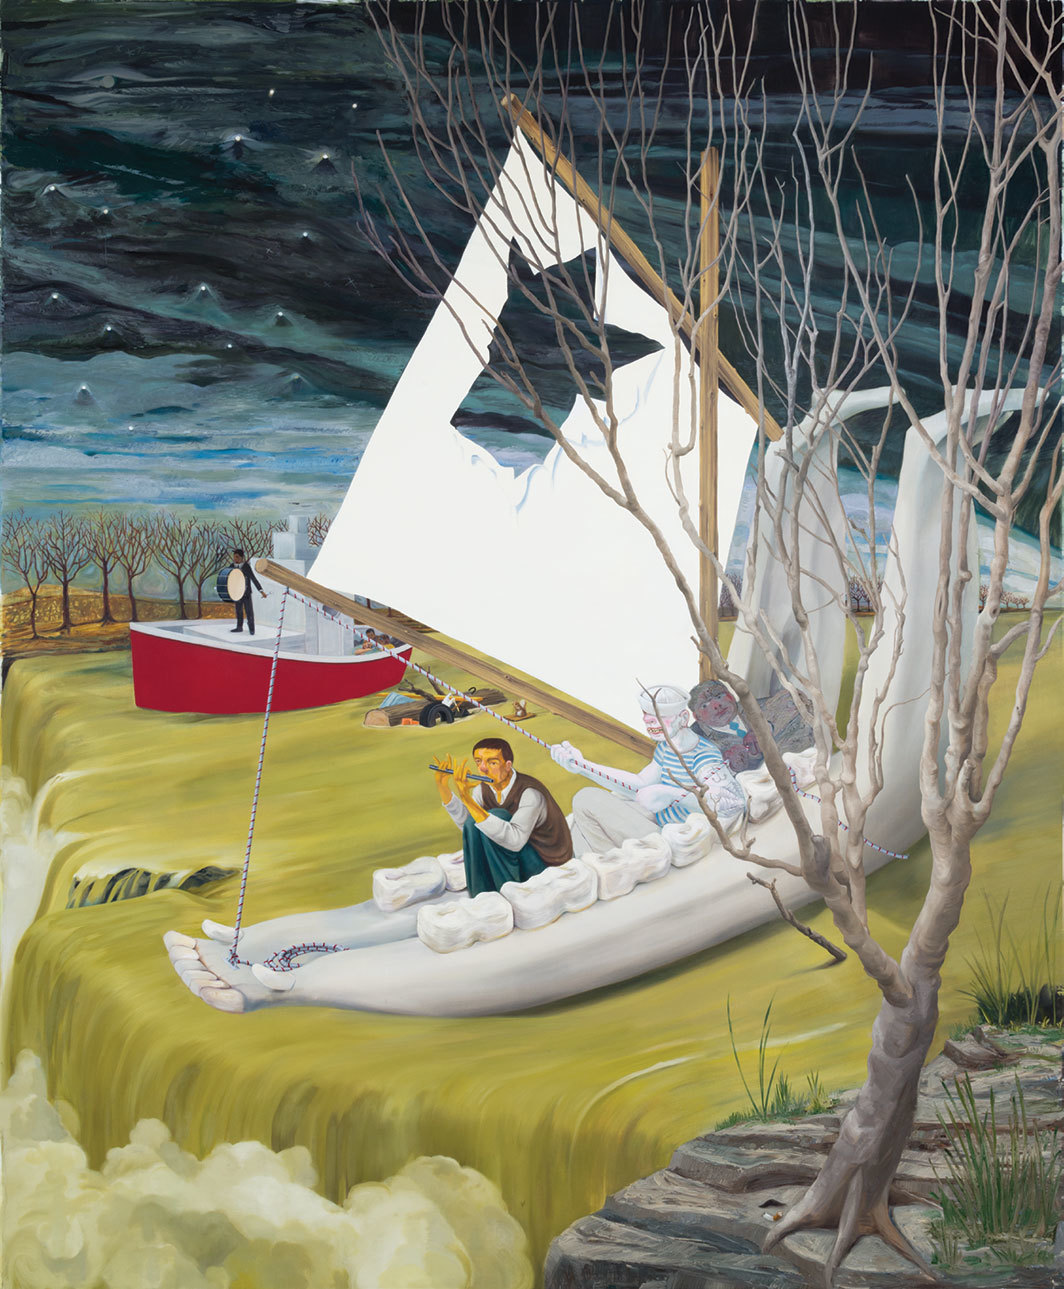 "Nicole Eisenman, Heading Down River on the USS J-Bone of an Ass, 2017, oil on canvas, 10' 7 1⁄4"" × 8' 9""."